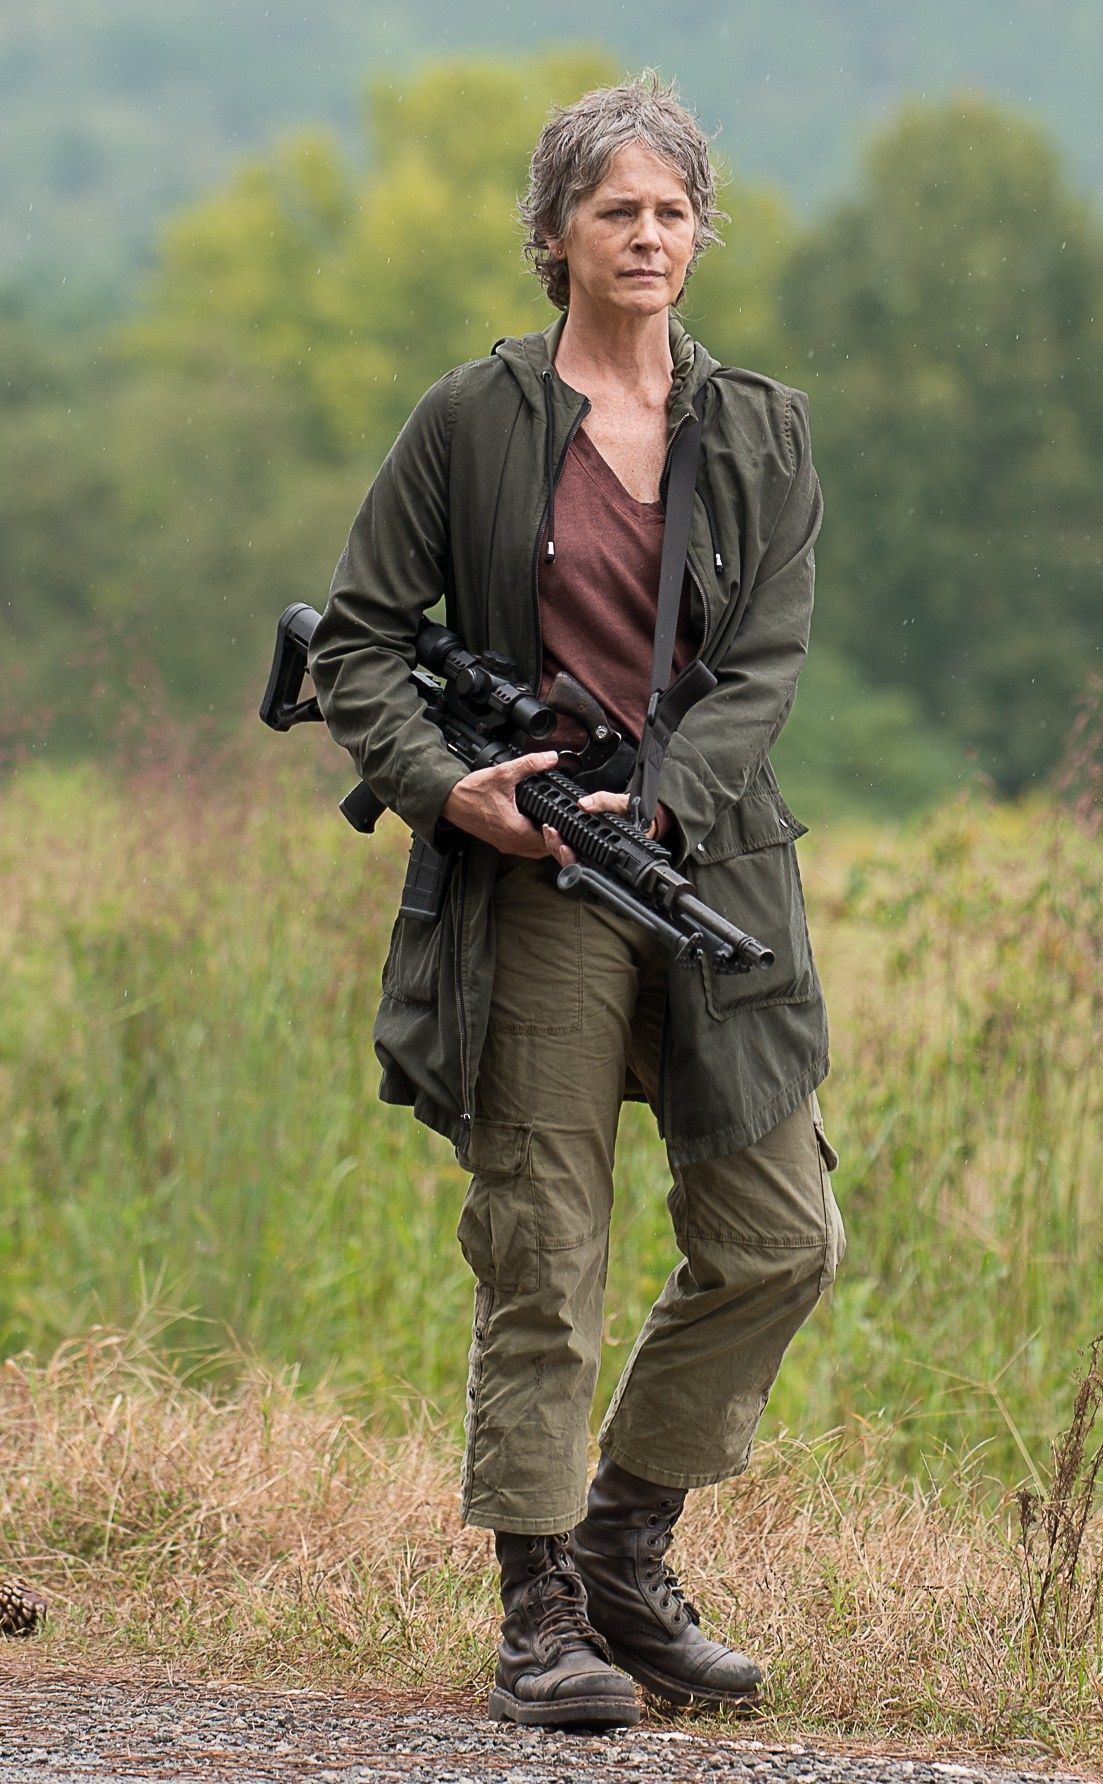 The character Carol, played by Melissa McBride, has quickly become a fan favourite since Season One.